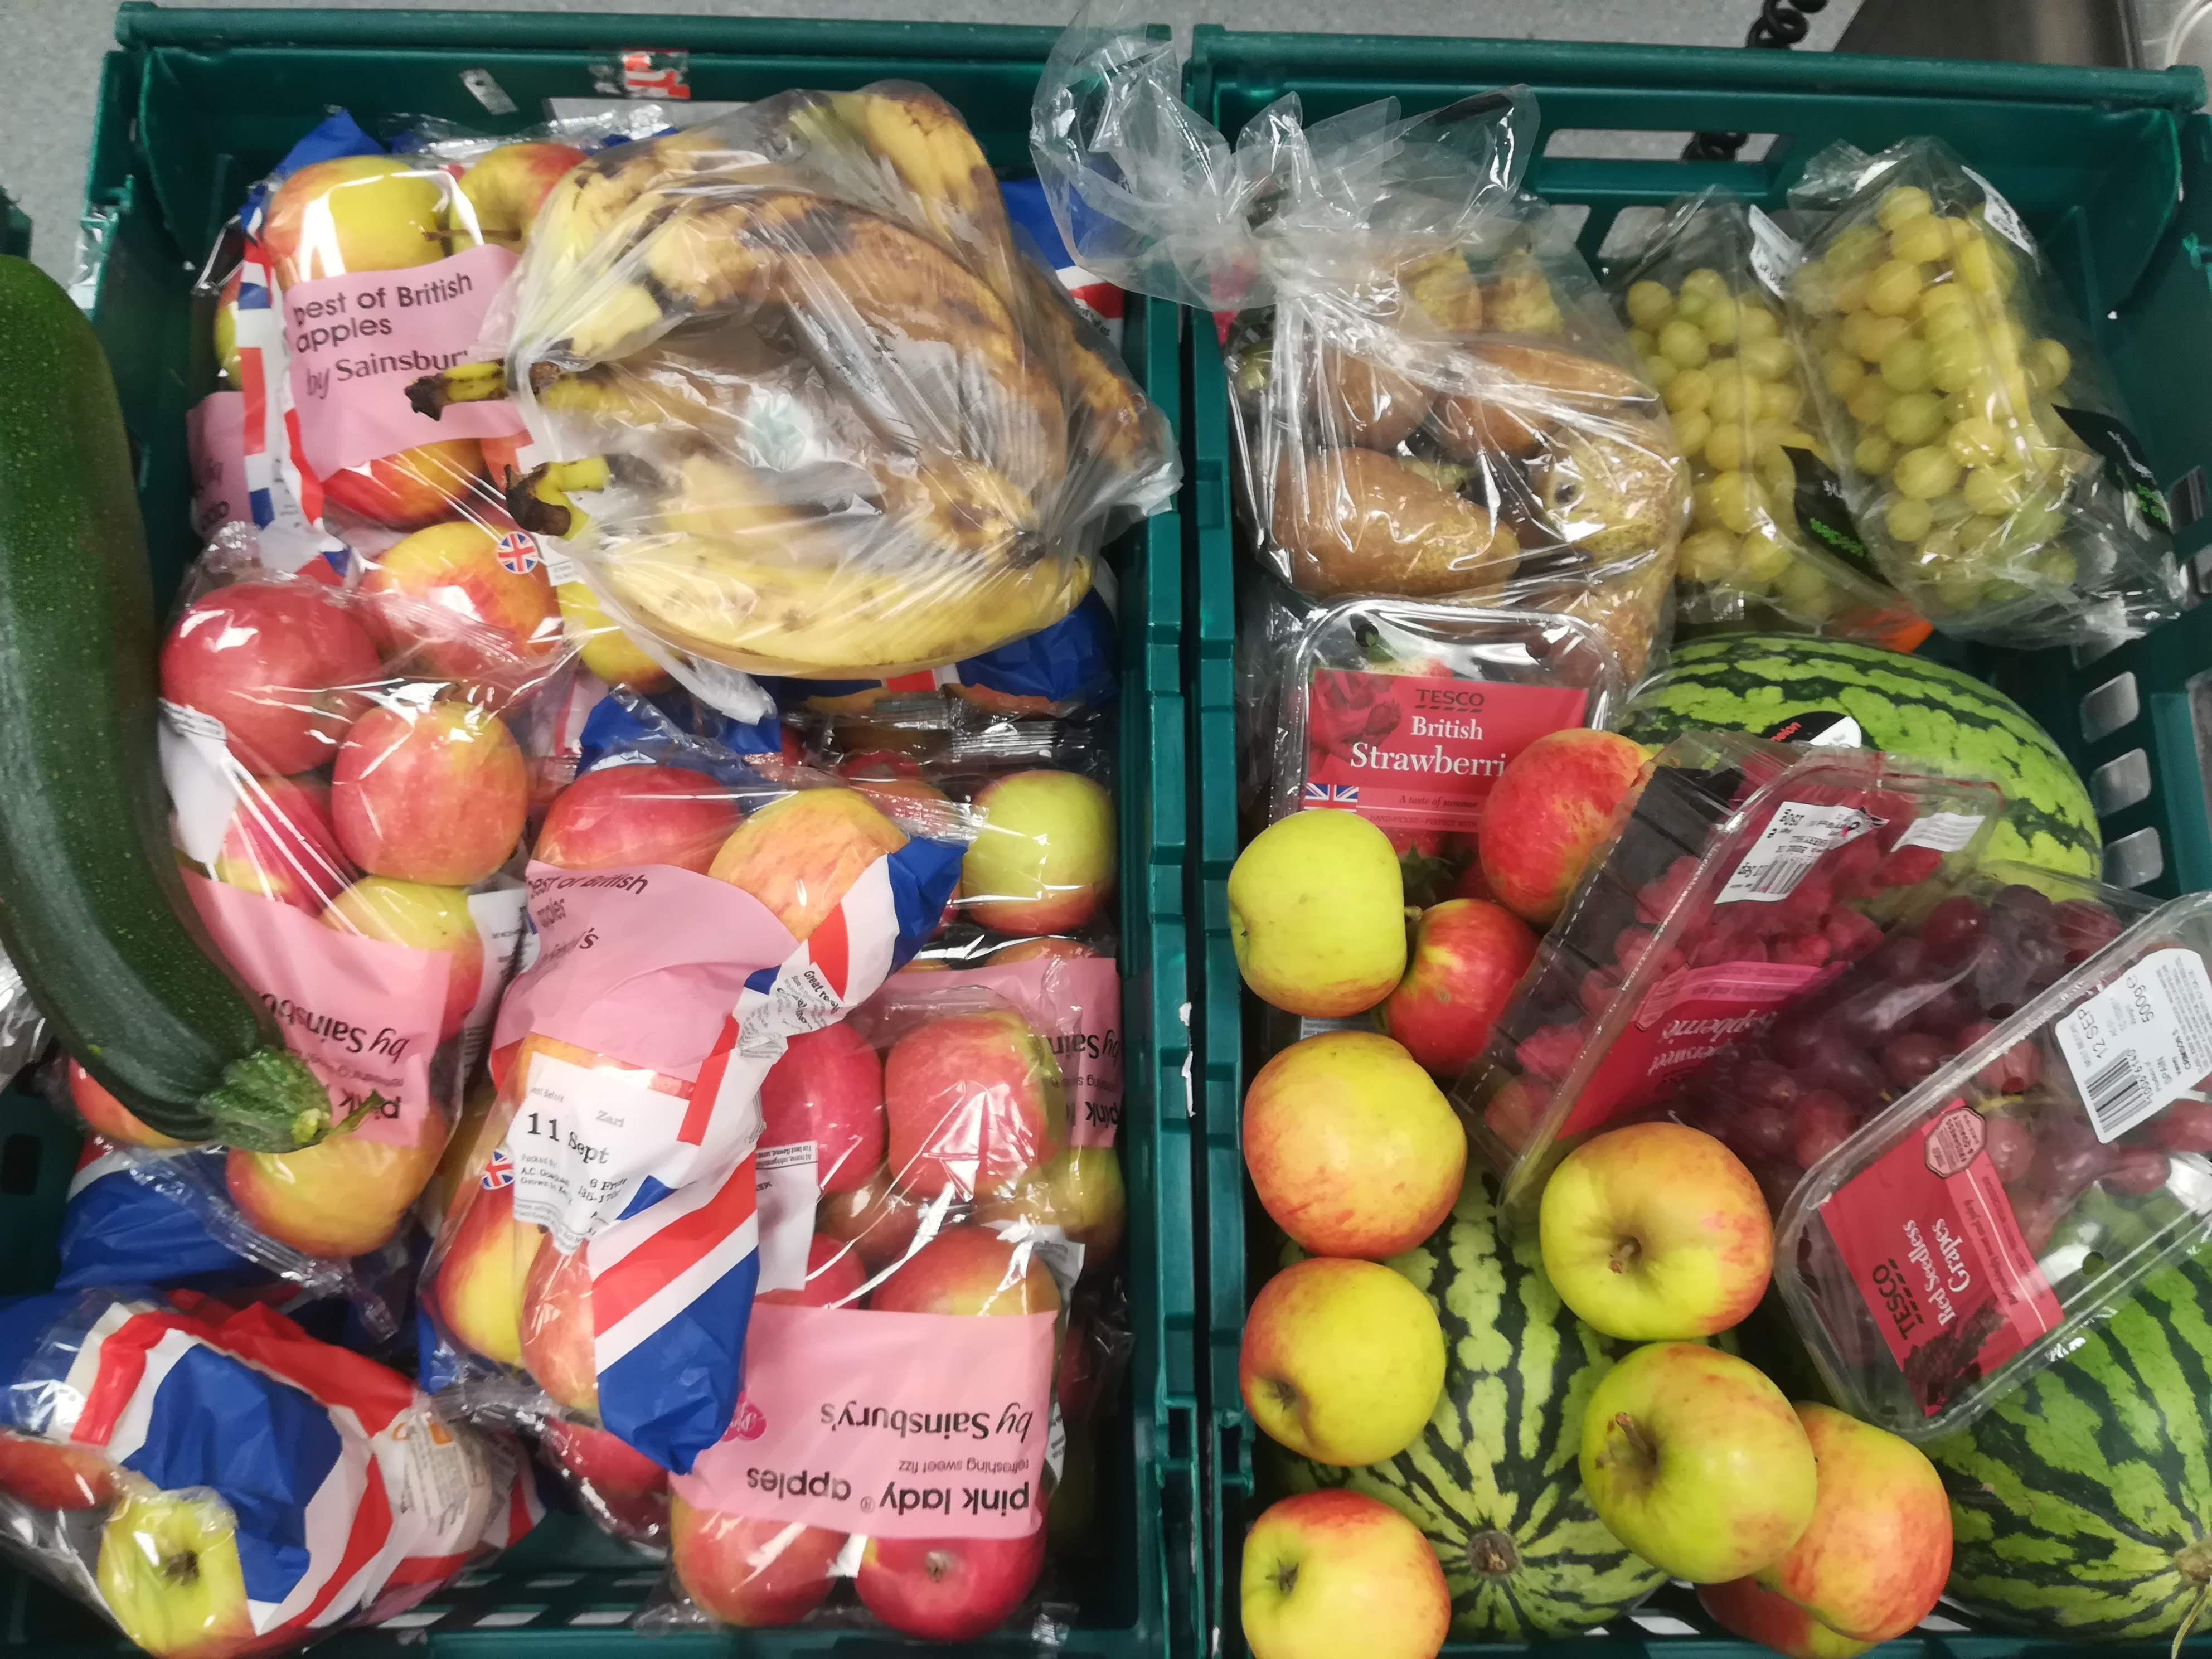 Surplus fruit and vegetables in a supermarket crate